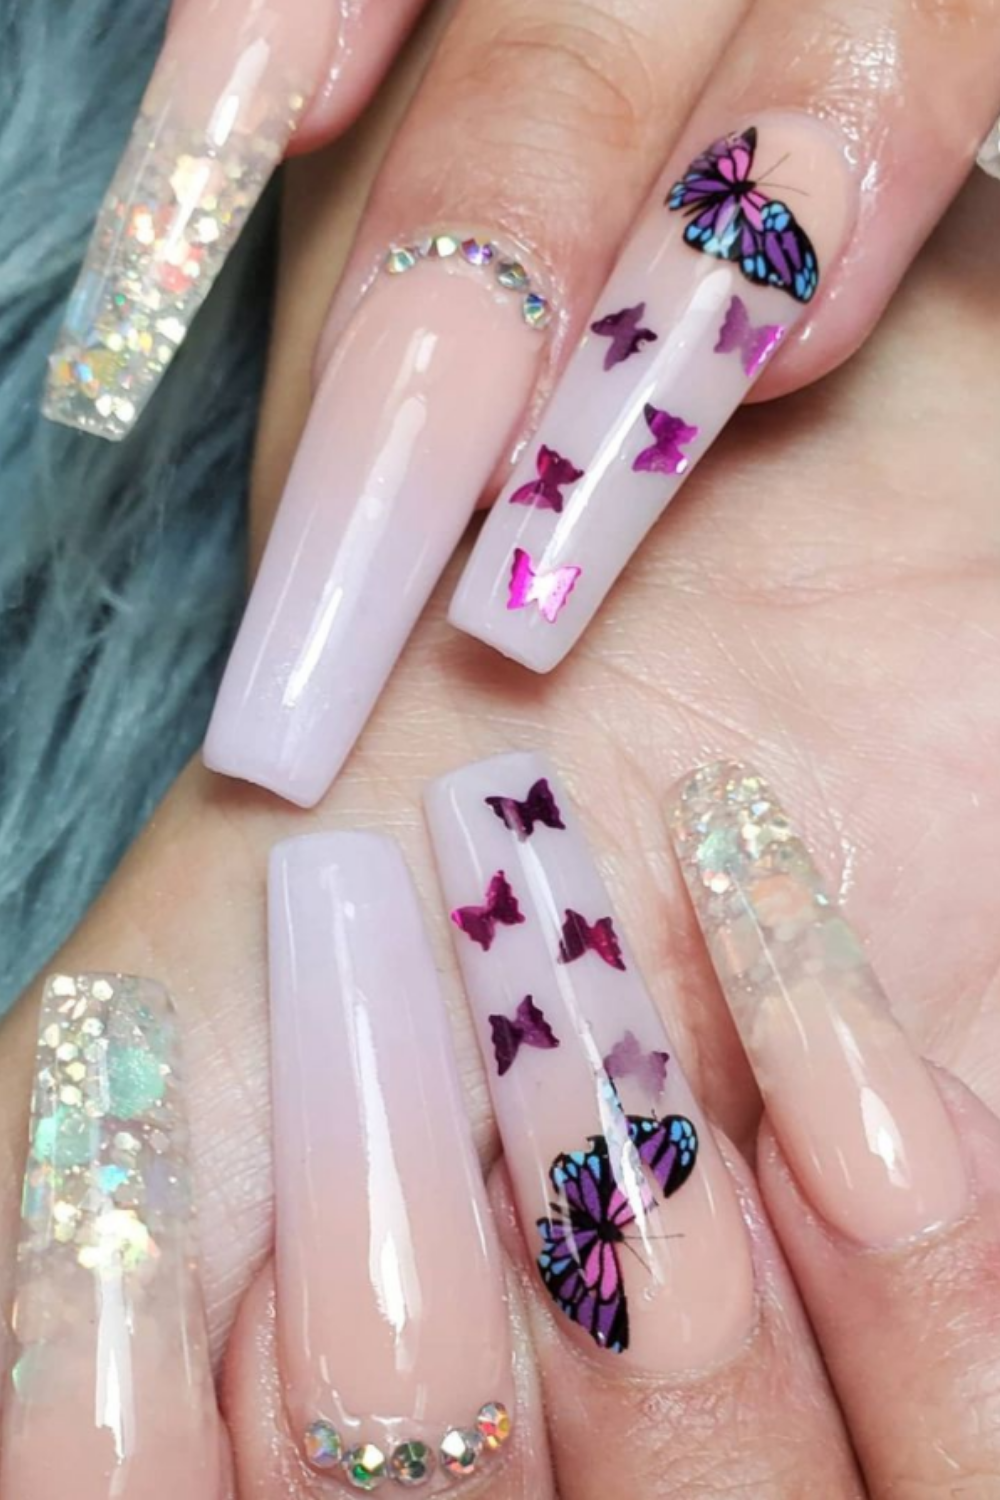 Acrylic nails summer 2021 in white for a subtle and elegant look